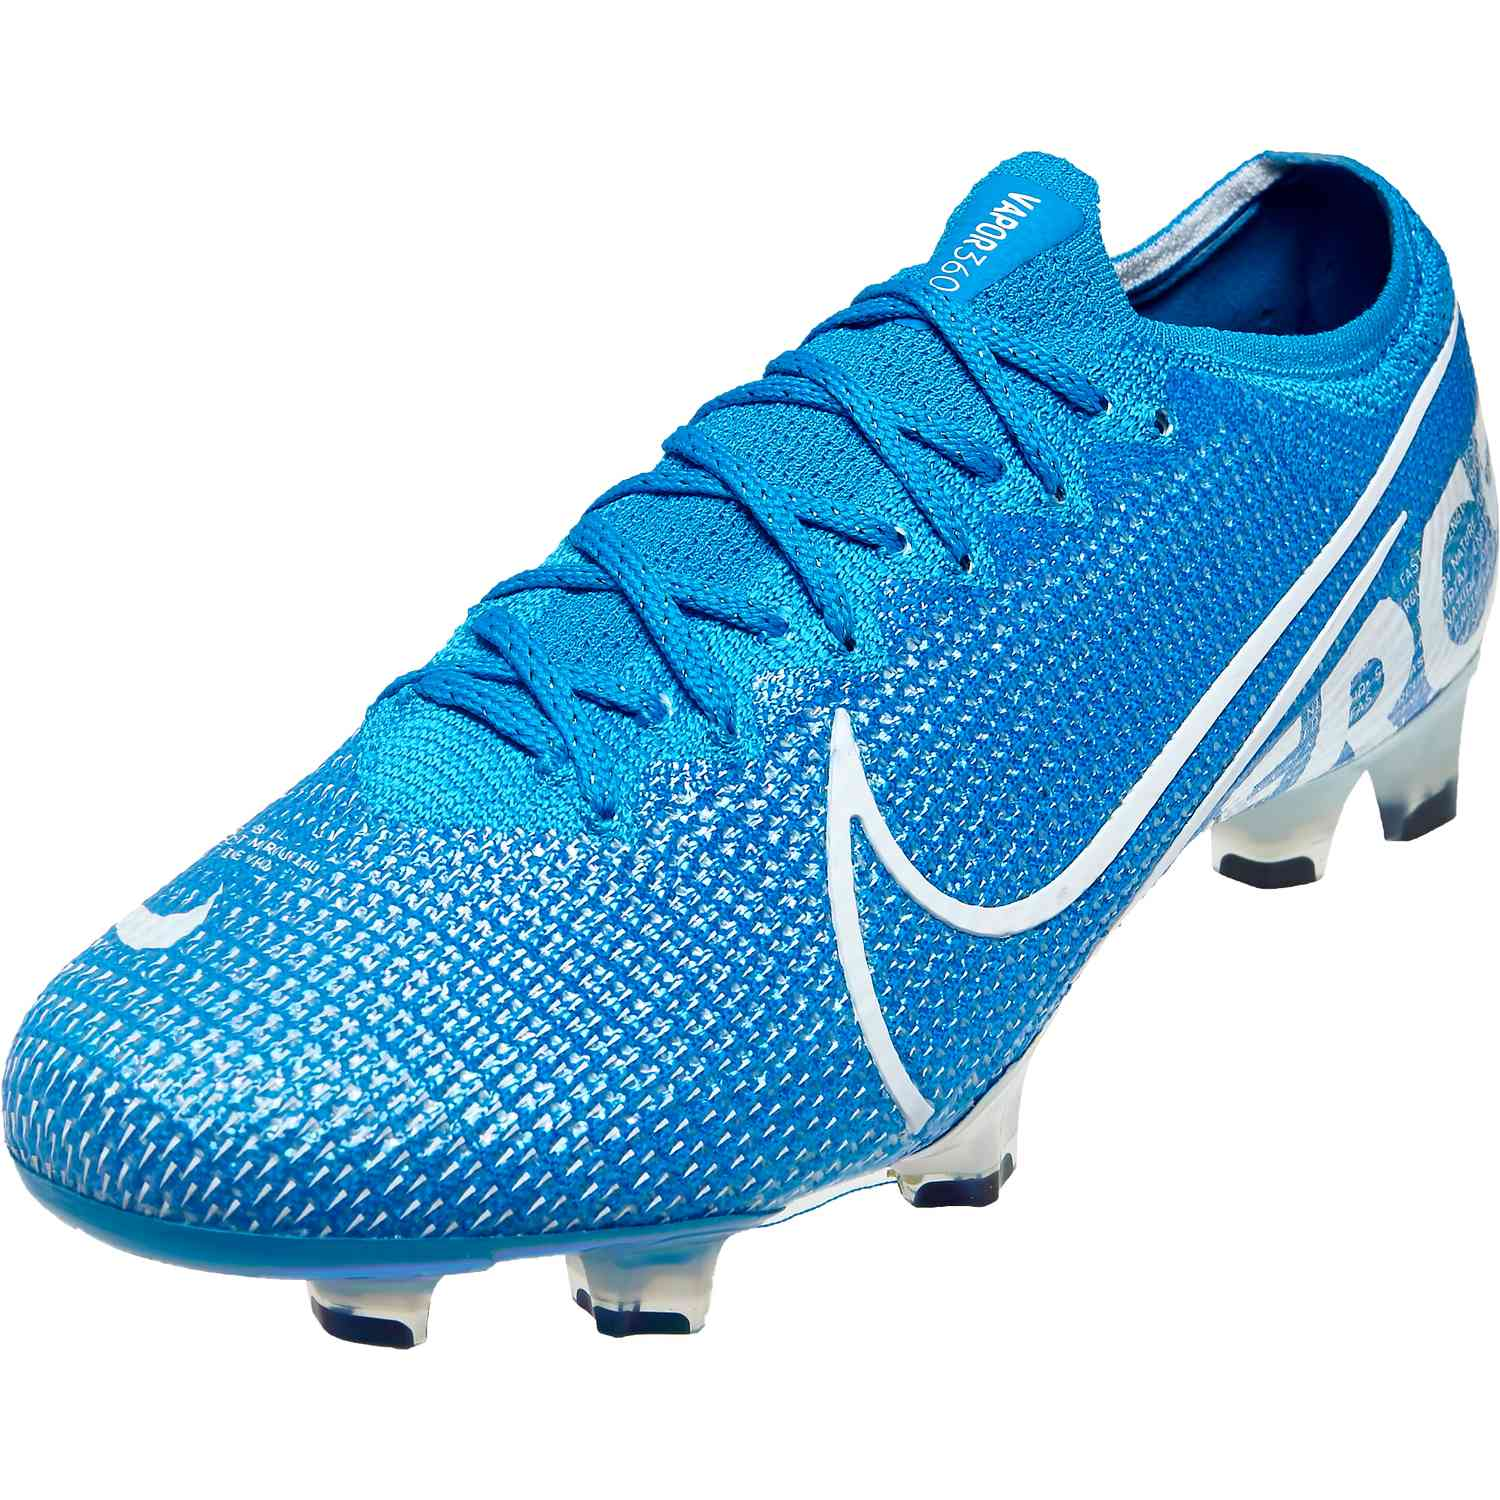 bas prix df64f 455e5 Nike Mercurial Vapor 13 Elite FG - New Lights